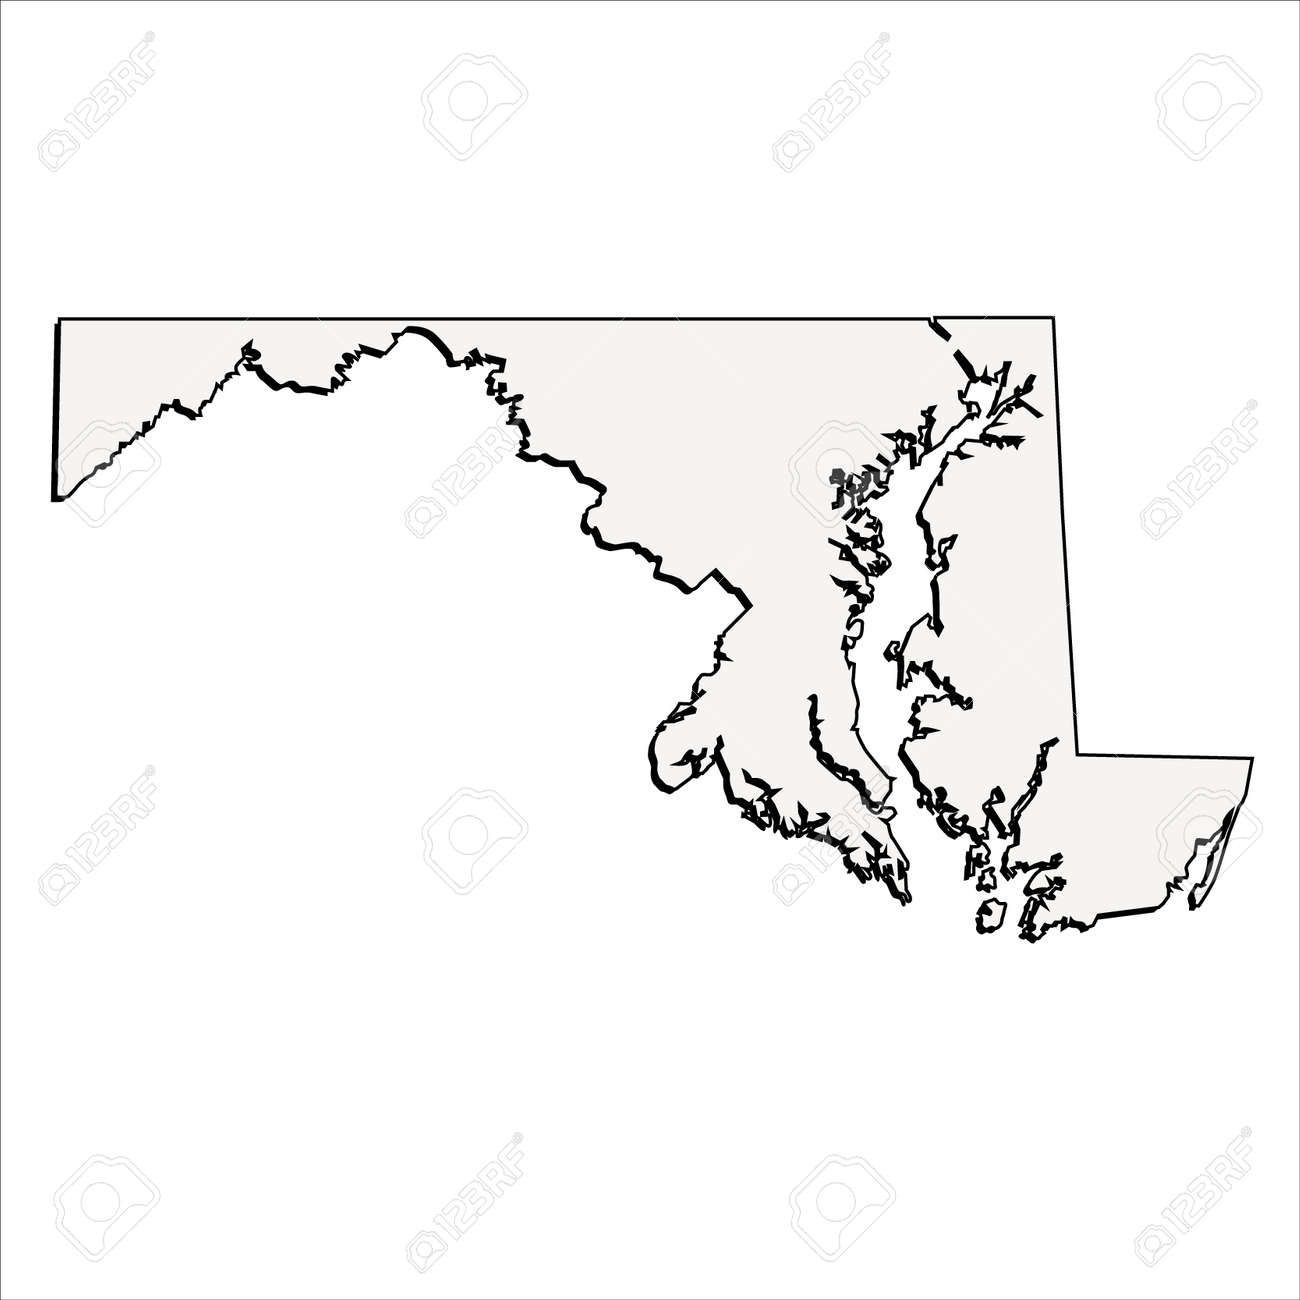 vector maryland state 3d outline map royalty free cliparts vectors